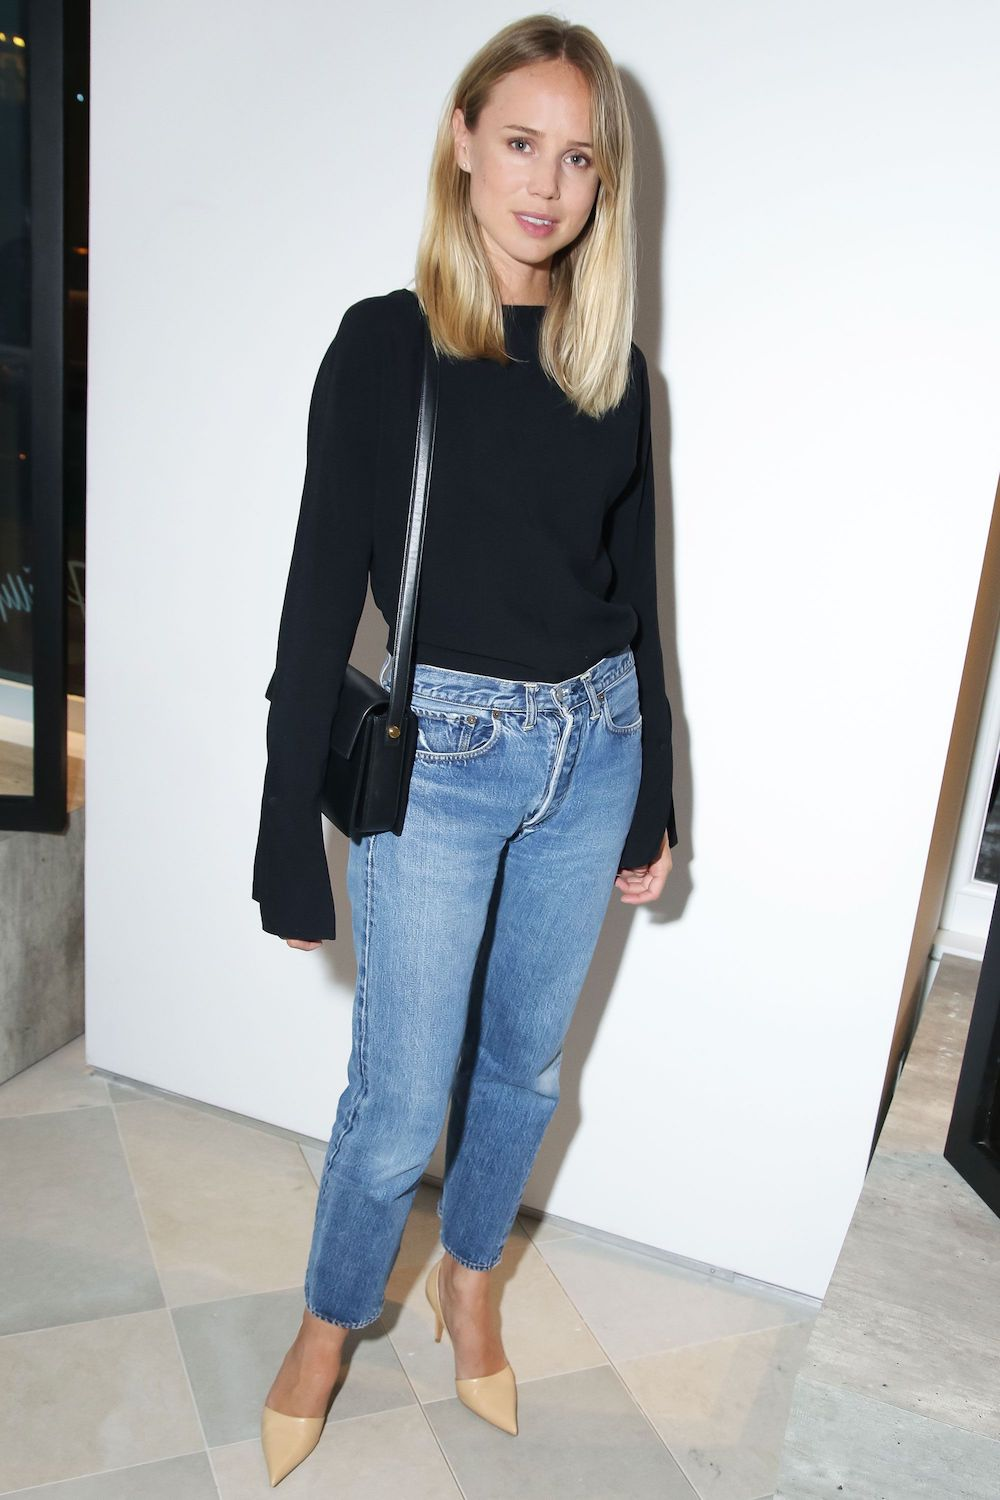 Effortless Denim Spring Outfit — Elin Kling in a black flare sleeve top, black shoulder bag, straight-leg jeans, and beige heels